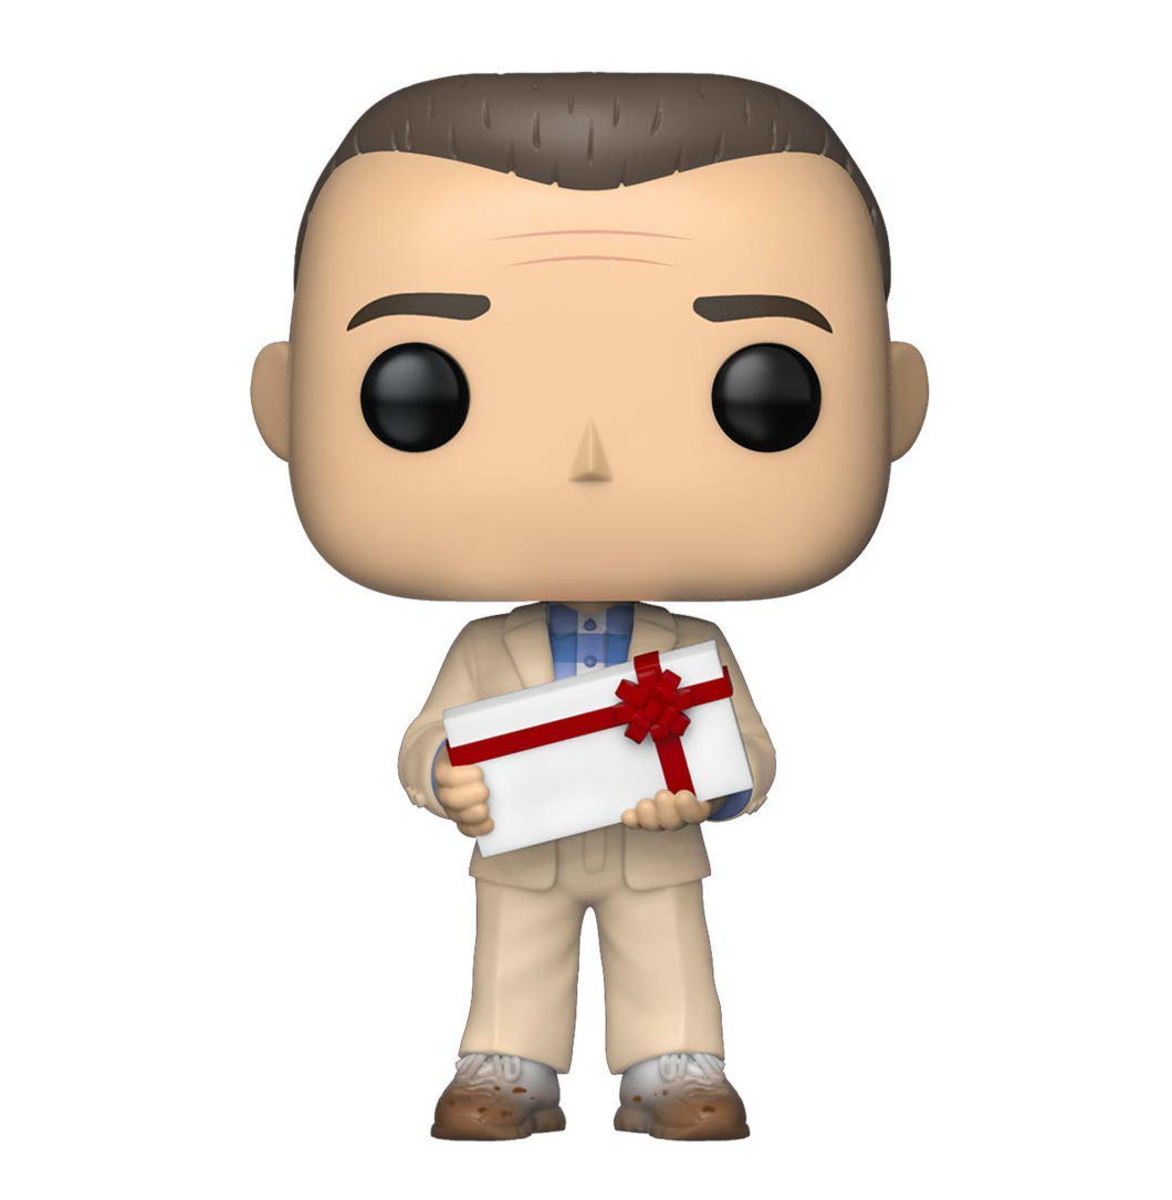 figurka Forrest Gump - POP!- Chocolates - FK40206